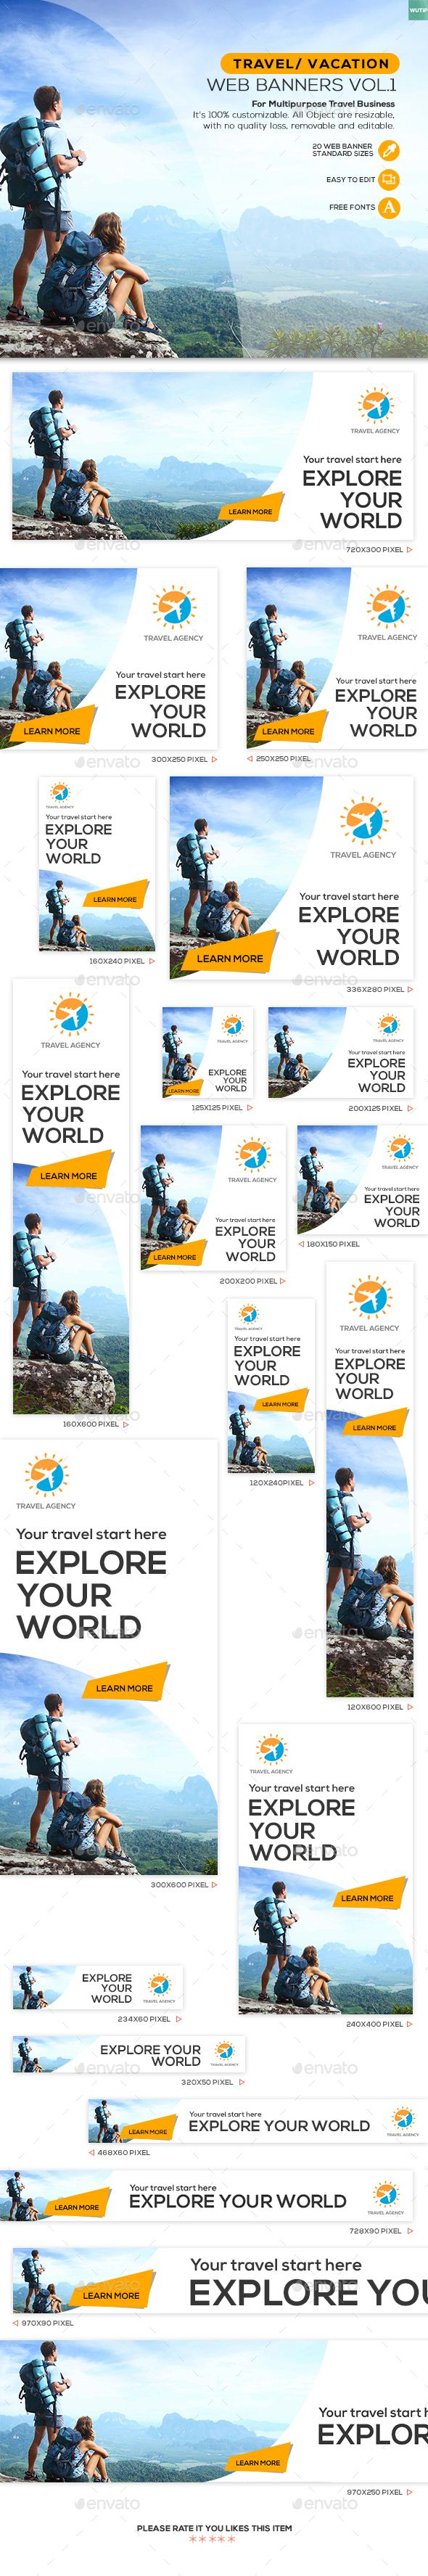 Travel / Vacation Web Banner Template PSD #design #ads Download: http://graphicriver.net/item/travel-vacation-web-banner-vol1/13754811?ref=ksioks